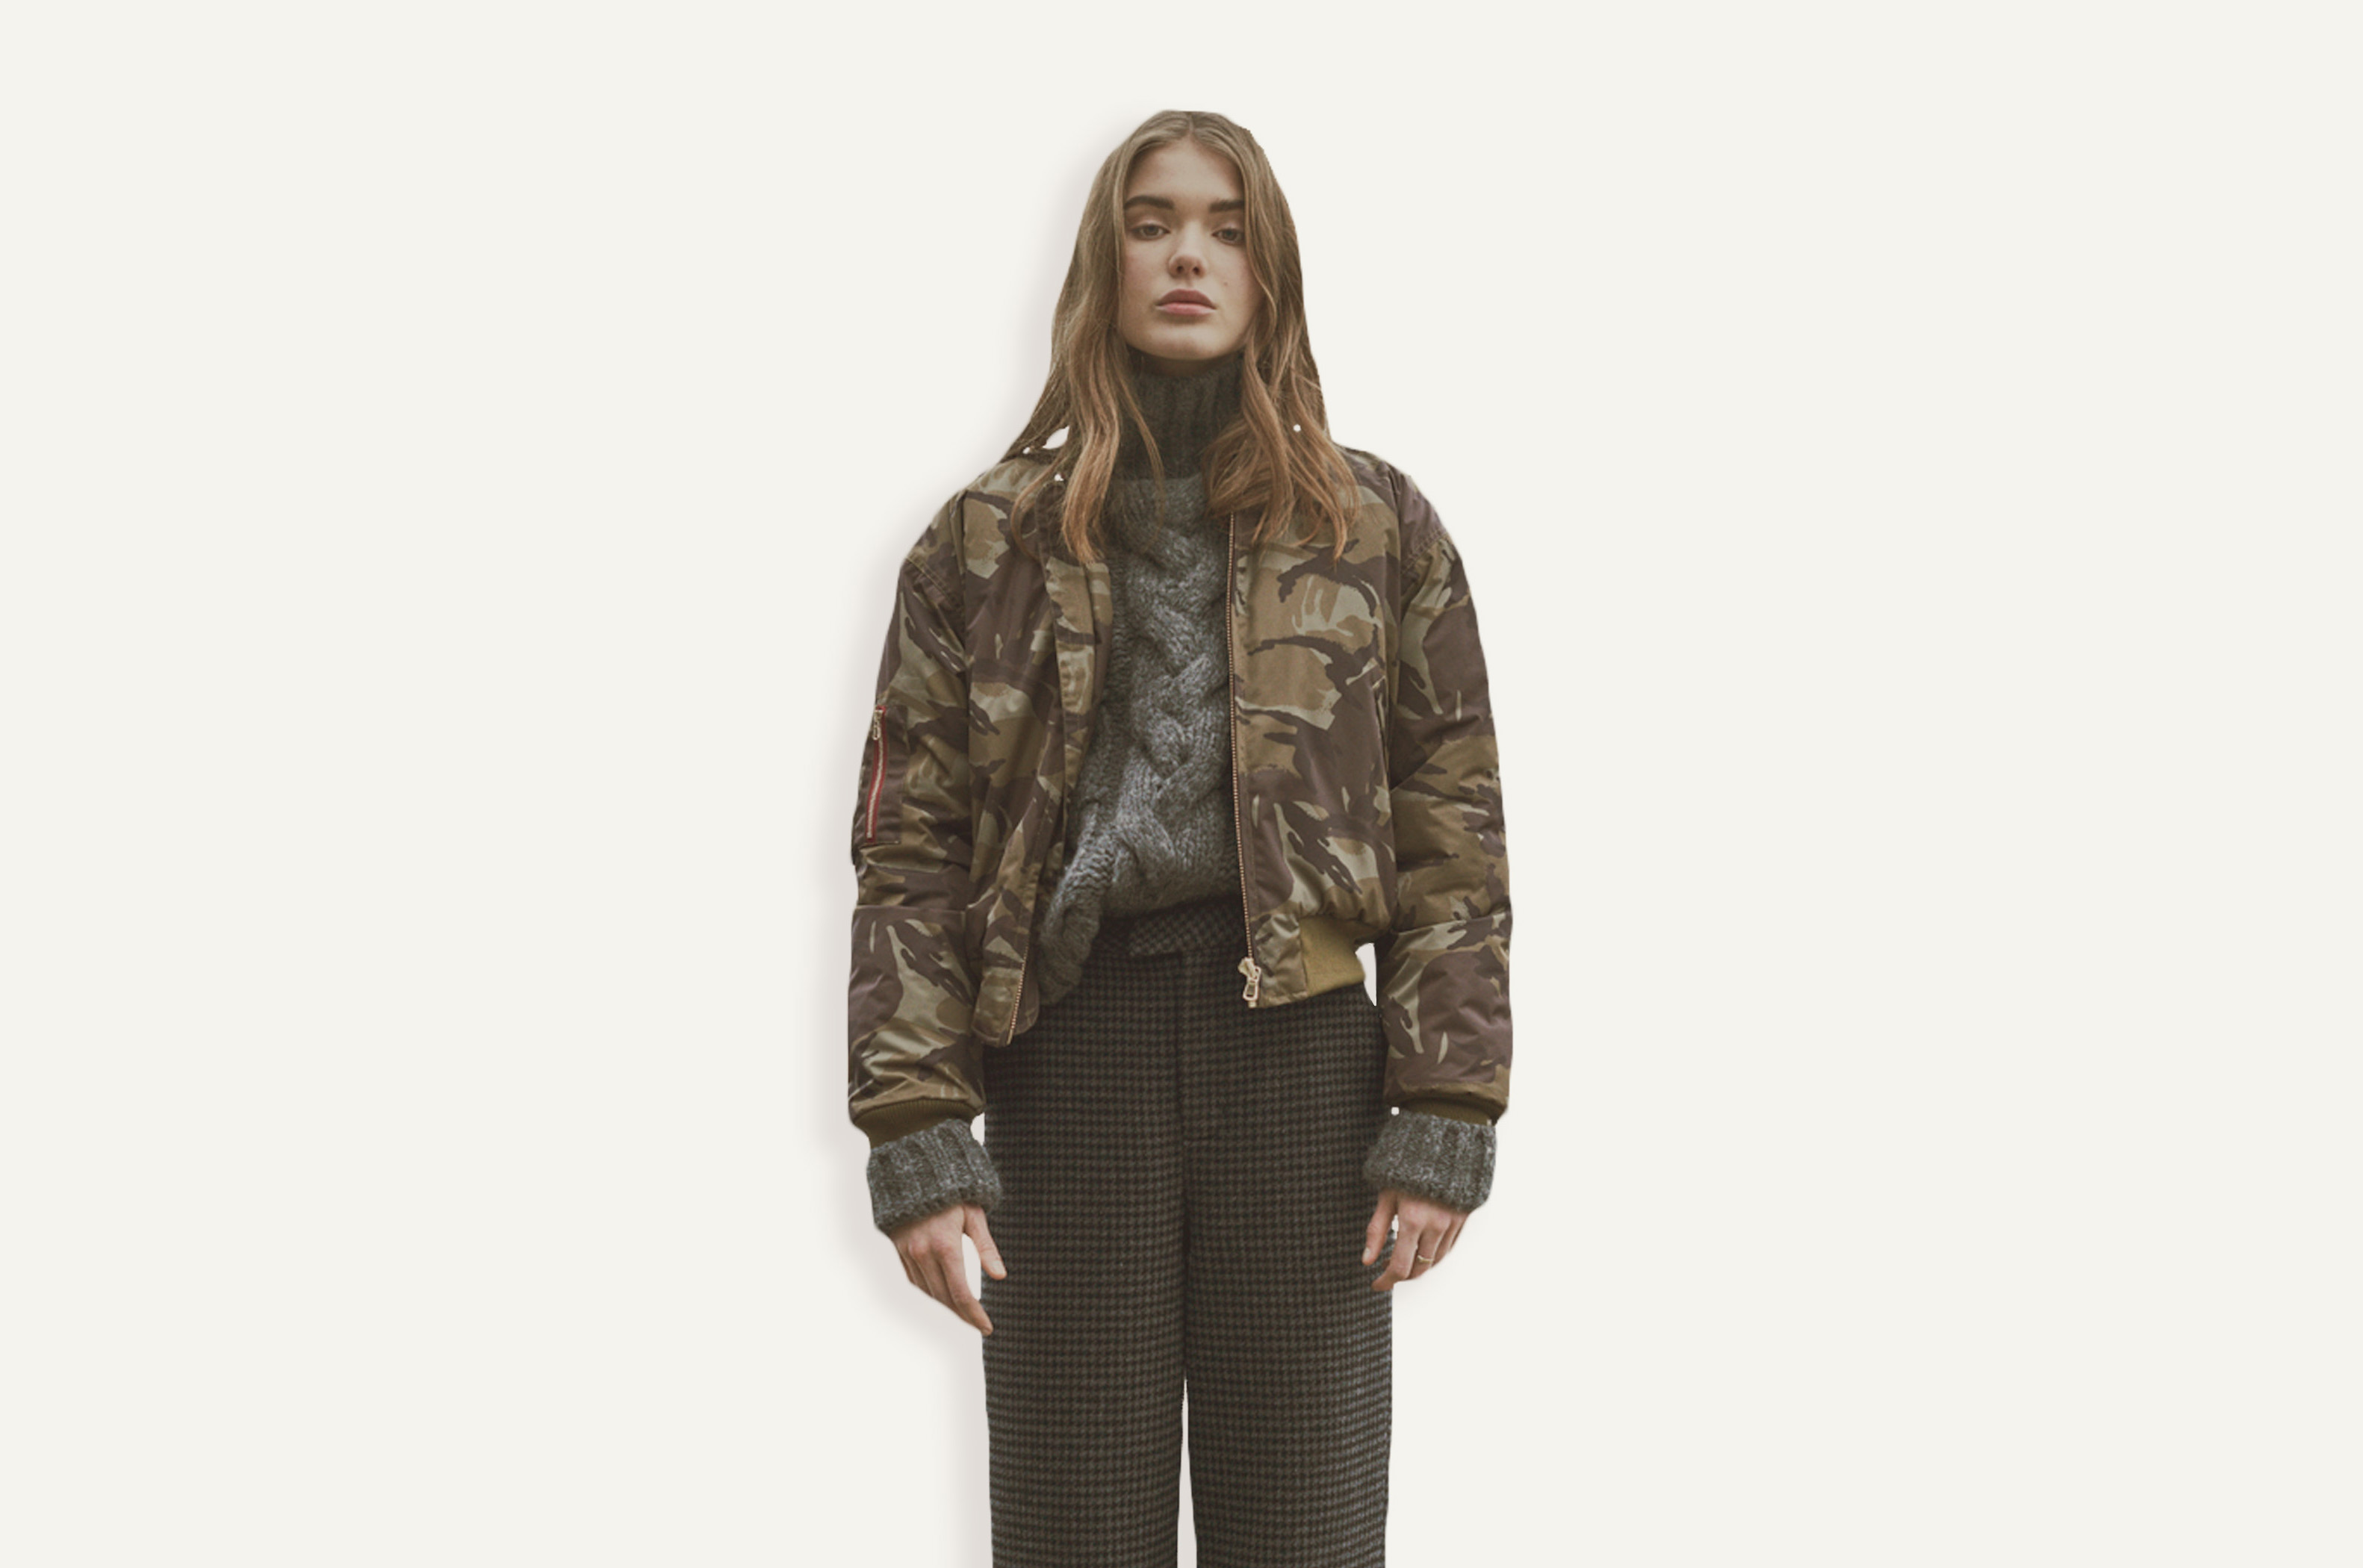 Looks from Ganni's new outerwear collection